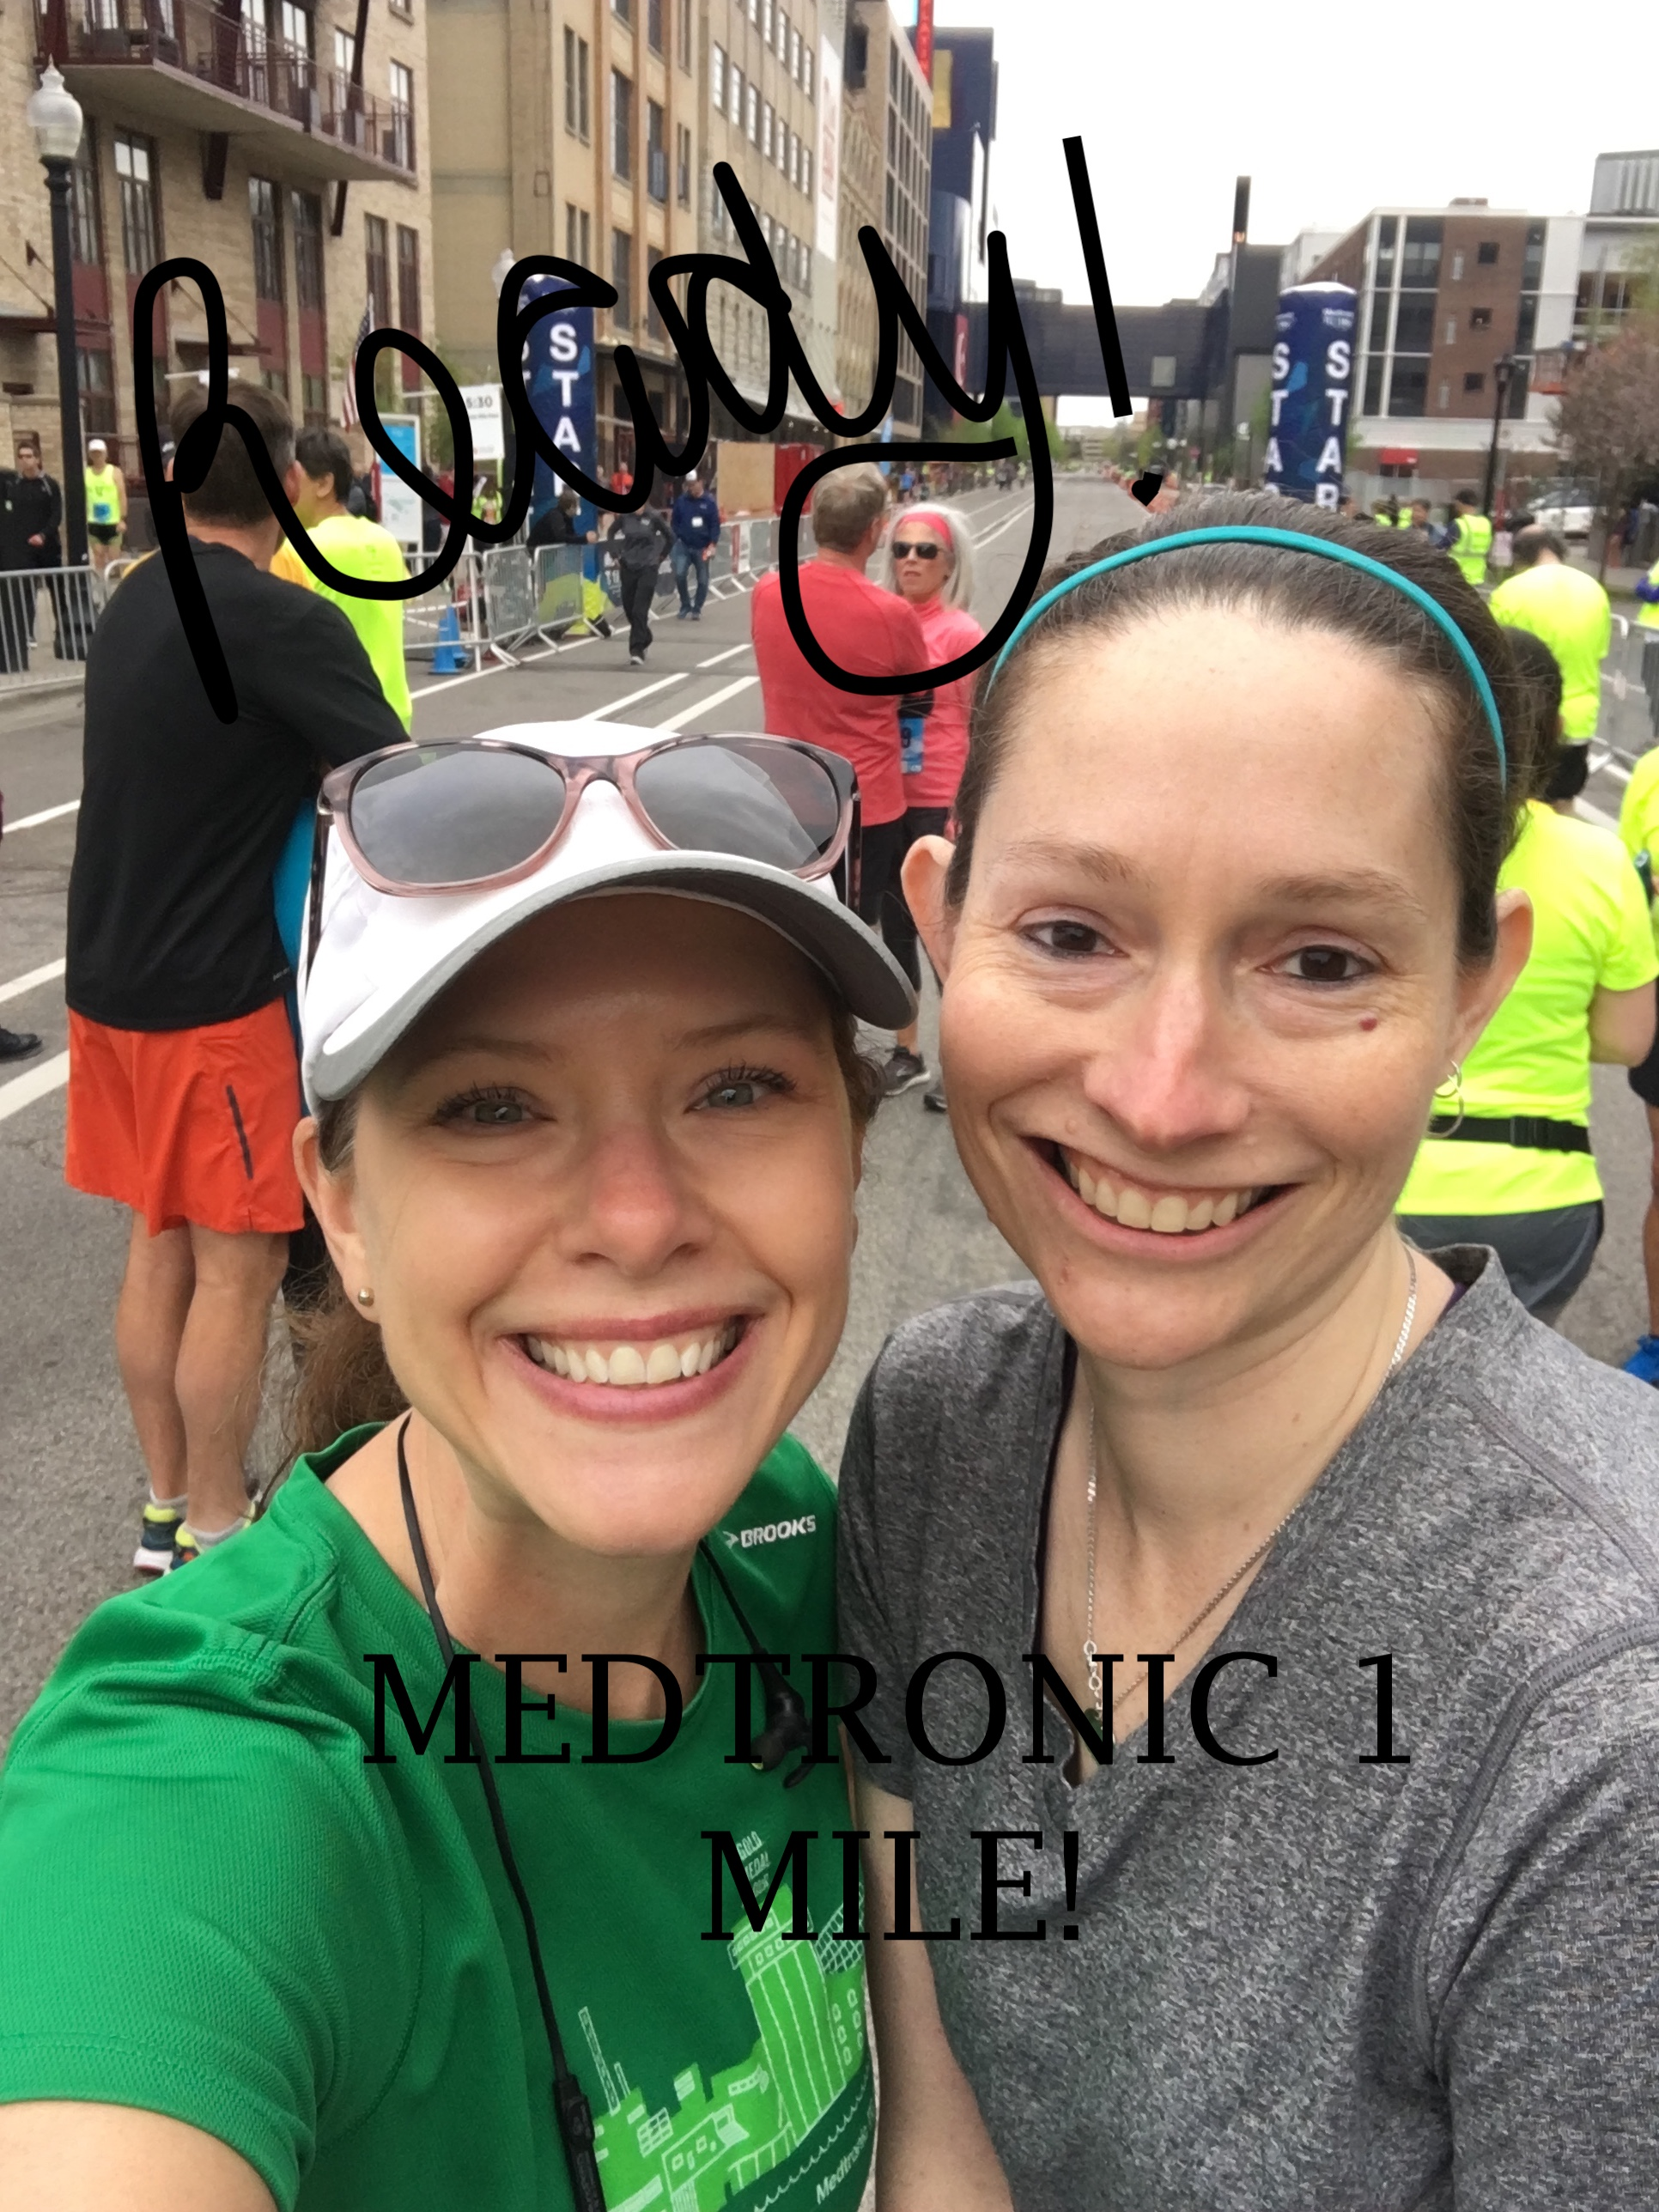 MEL AND DEB MEDRONIC 1 MILE VERSION 2